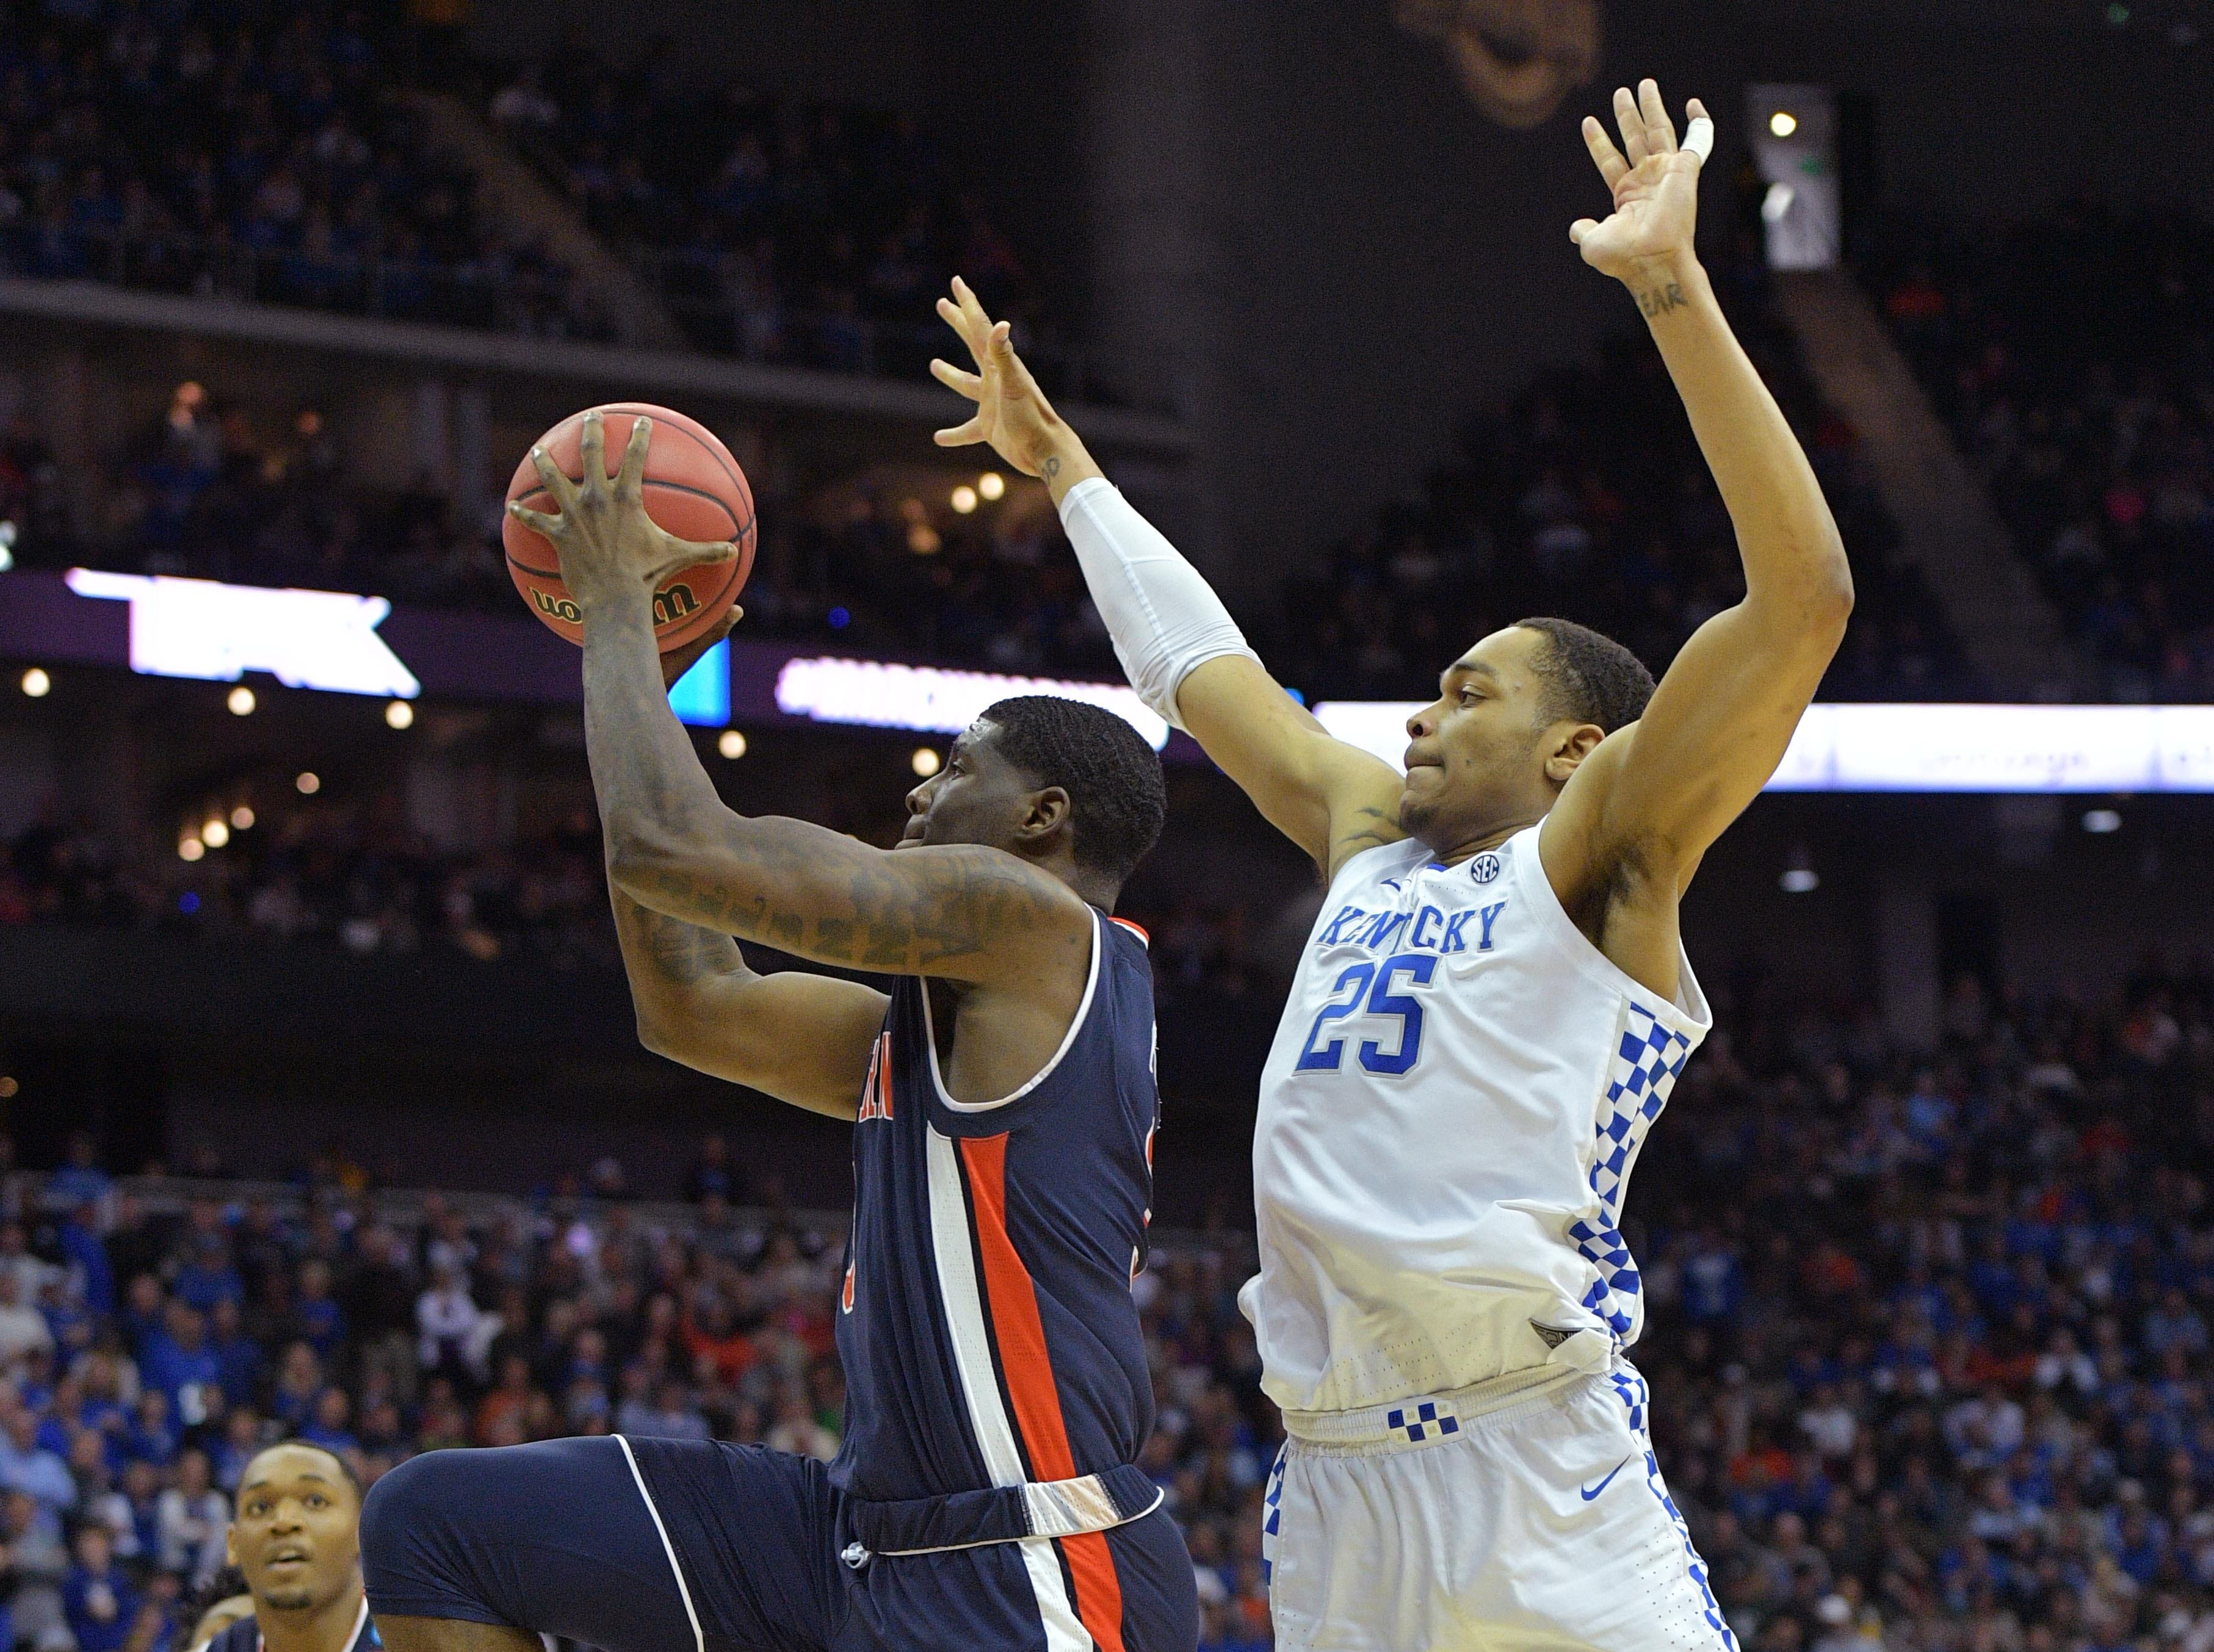 Mar 31, 2019; Kansas City, MO, United States; Auburn Tigers forward Danjel Purifoy (3) shoots against Kentucky Wildcats forward PJ Washington (25) during the second half in the championship game of the midwest regional of the 2019 NCAA Tournament at Sprint Center. Mandatory Credit: Denny Medley-USA TODAY Sports